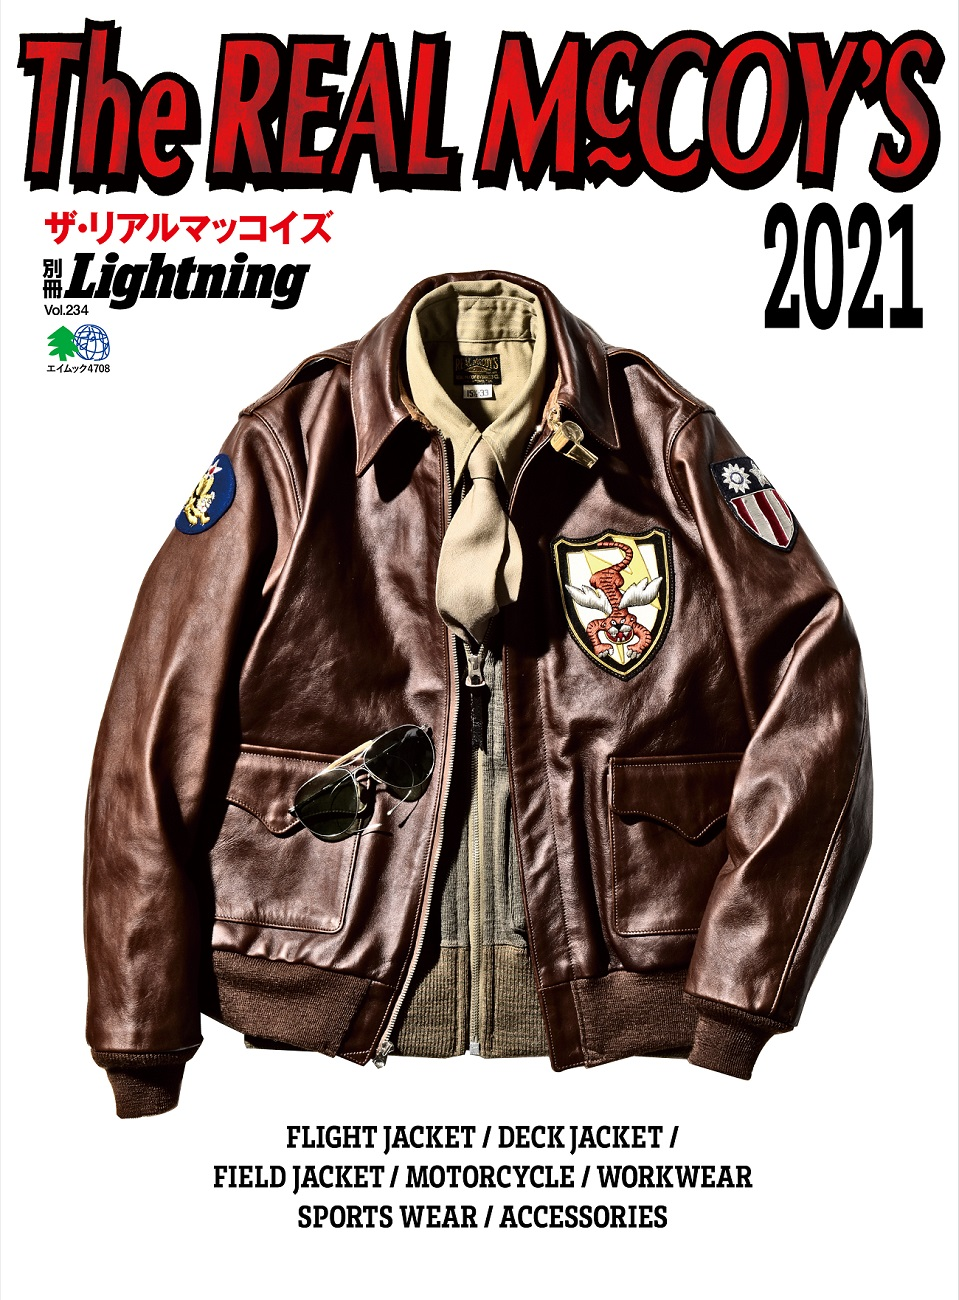 http://www.realmccoys.co.jp/blog/whats_new/images/RB2021.jpg